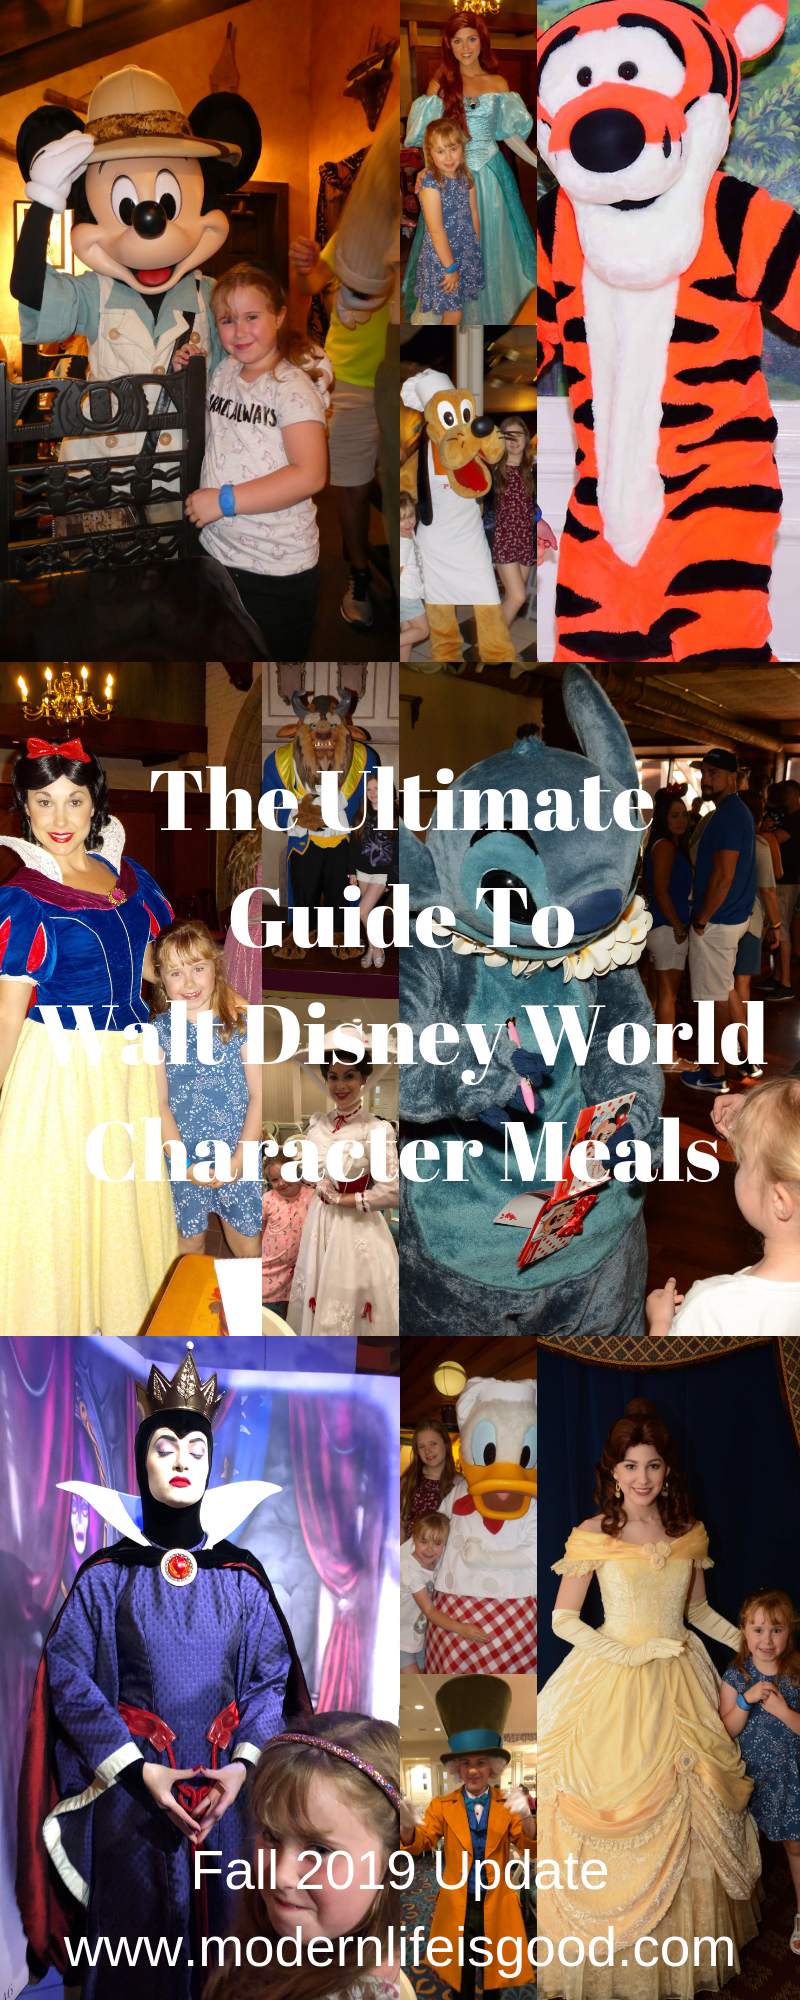 Our Guide to Walt Disney World Character meals was last updated during September…